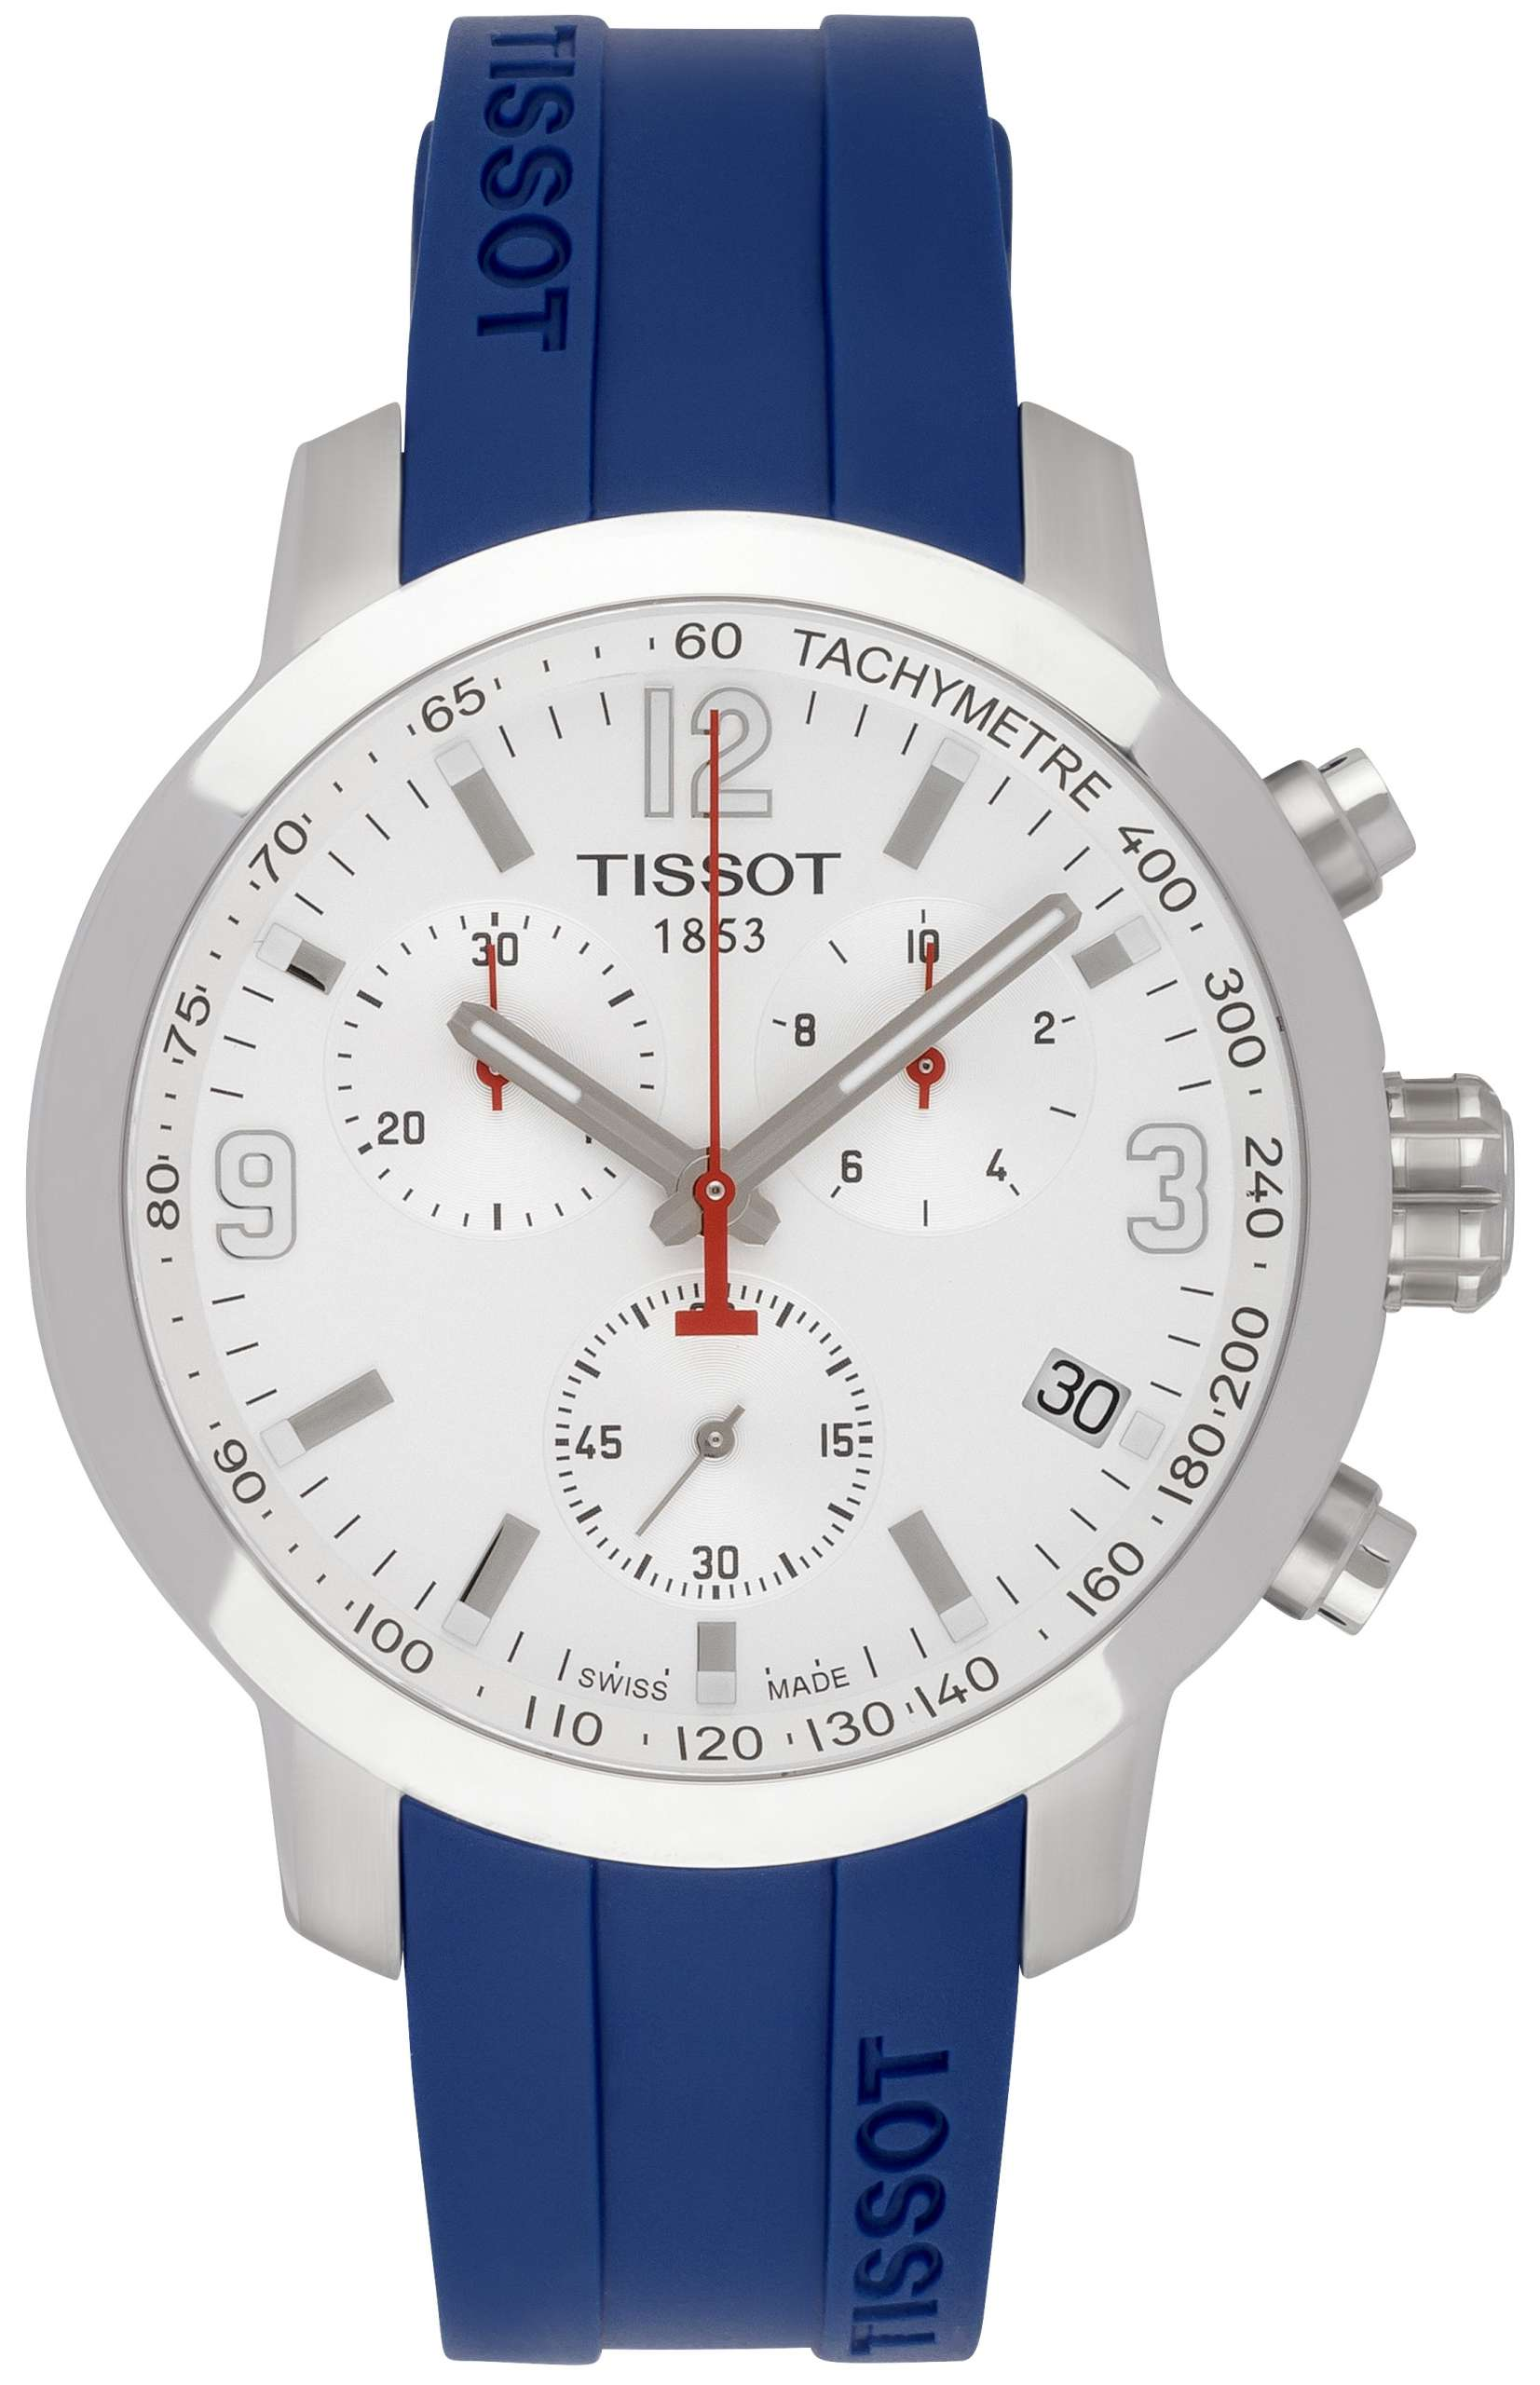 Tissot T-Touch II Titanium RBS 6 Nations Special Edition 2014